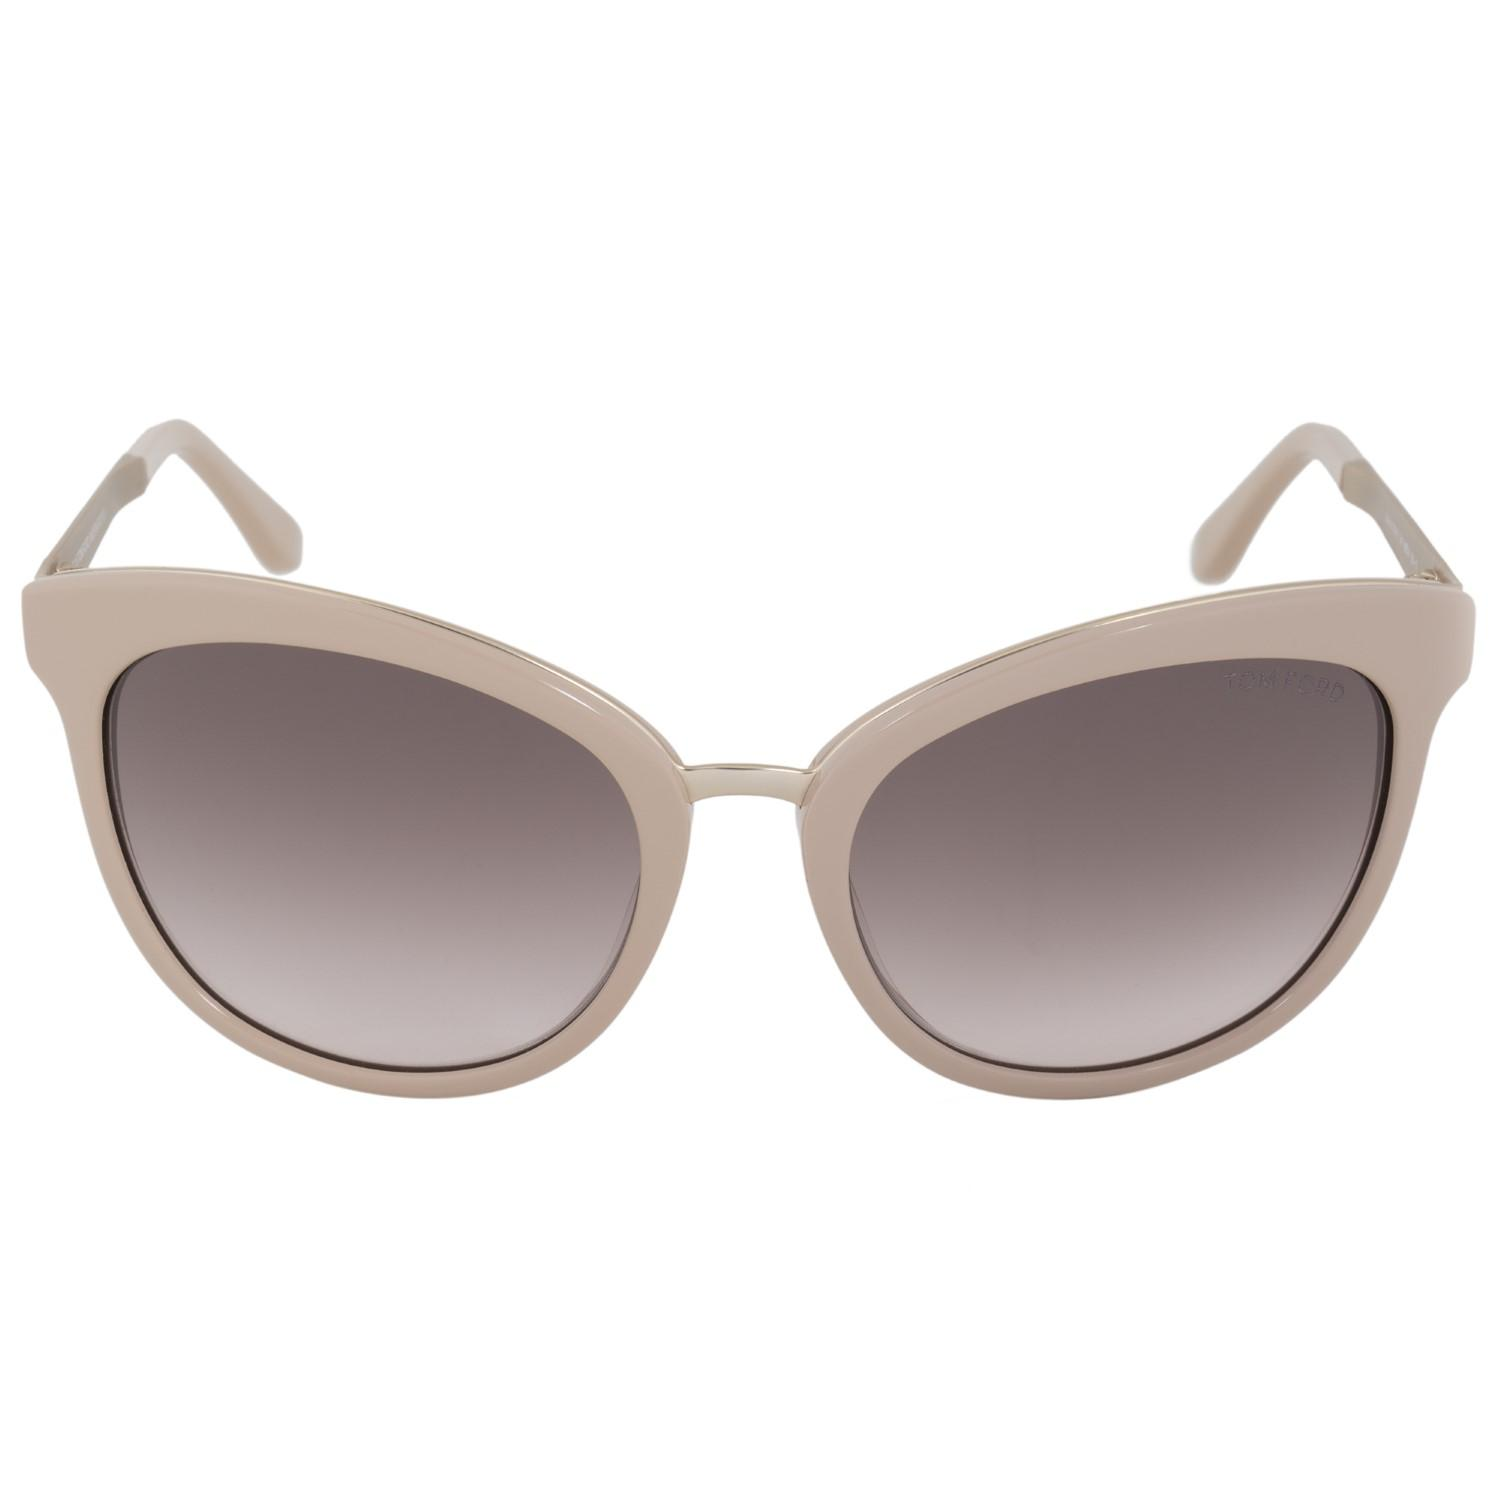 7195c469f348 Lyst - Tom Ford Ft0461 Sunglasses Pink   Brown Rose in Pink